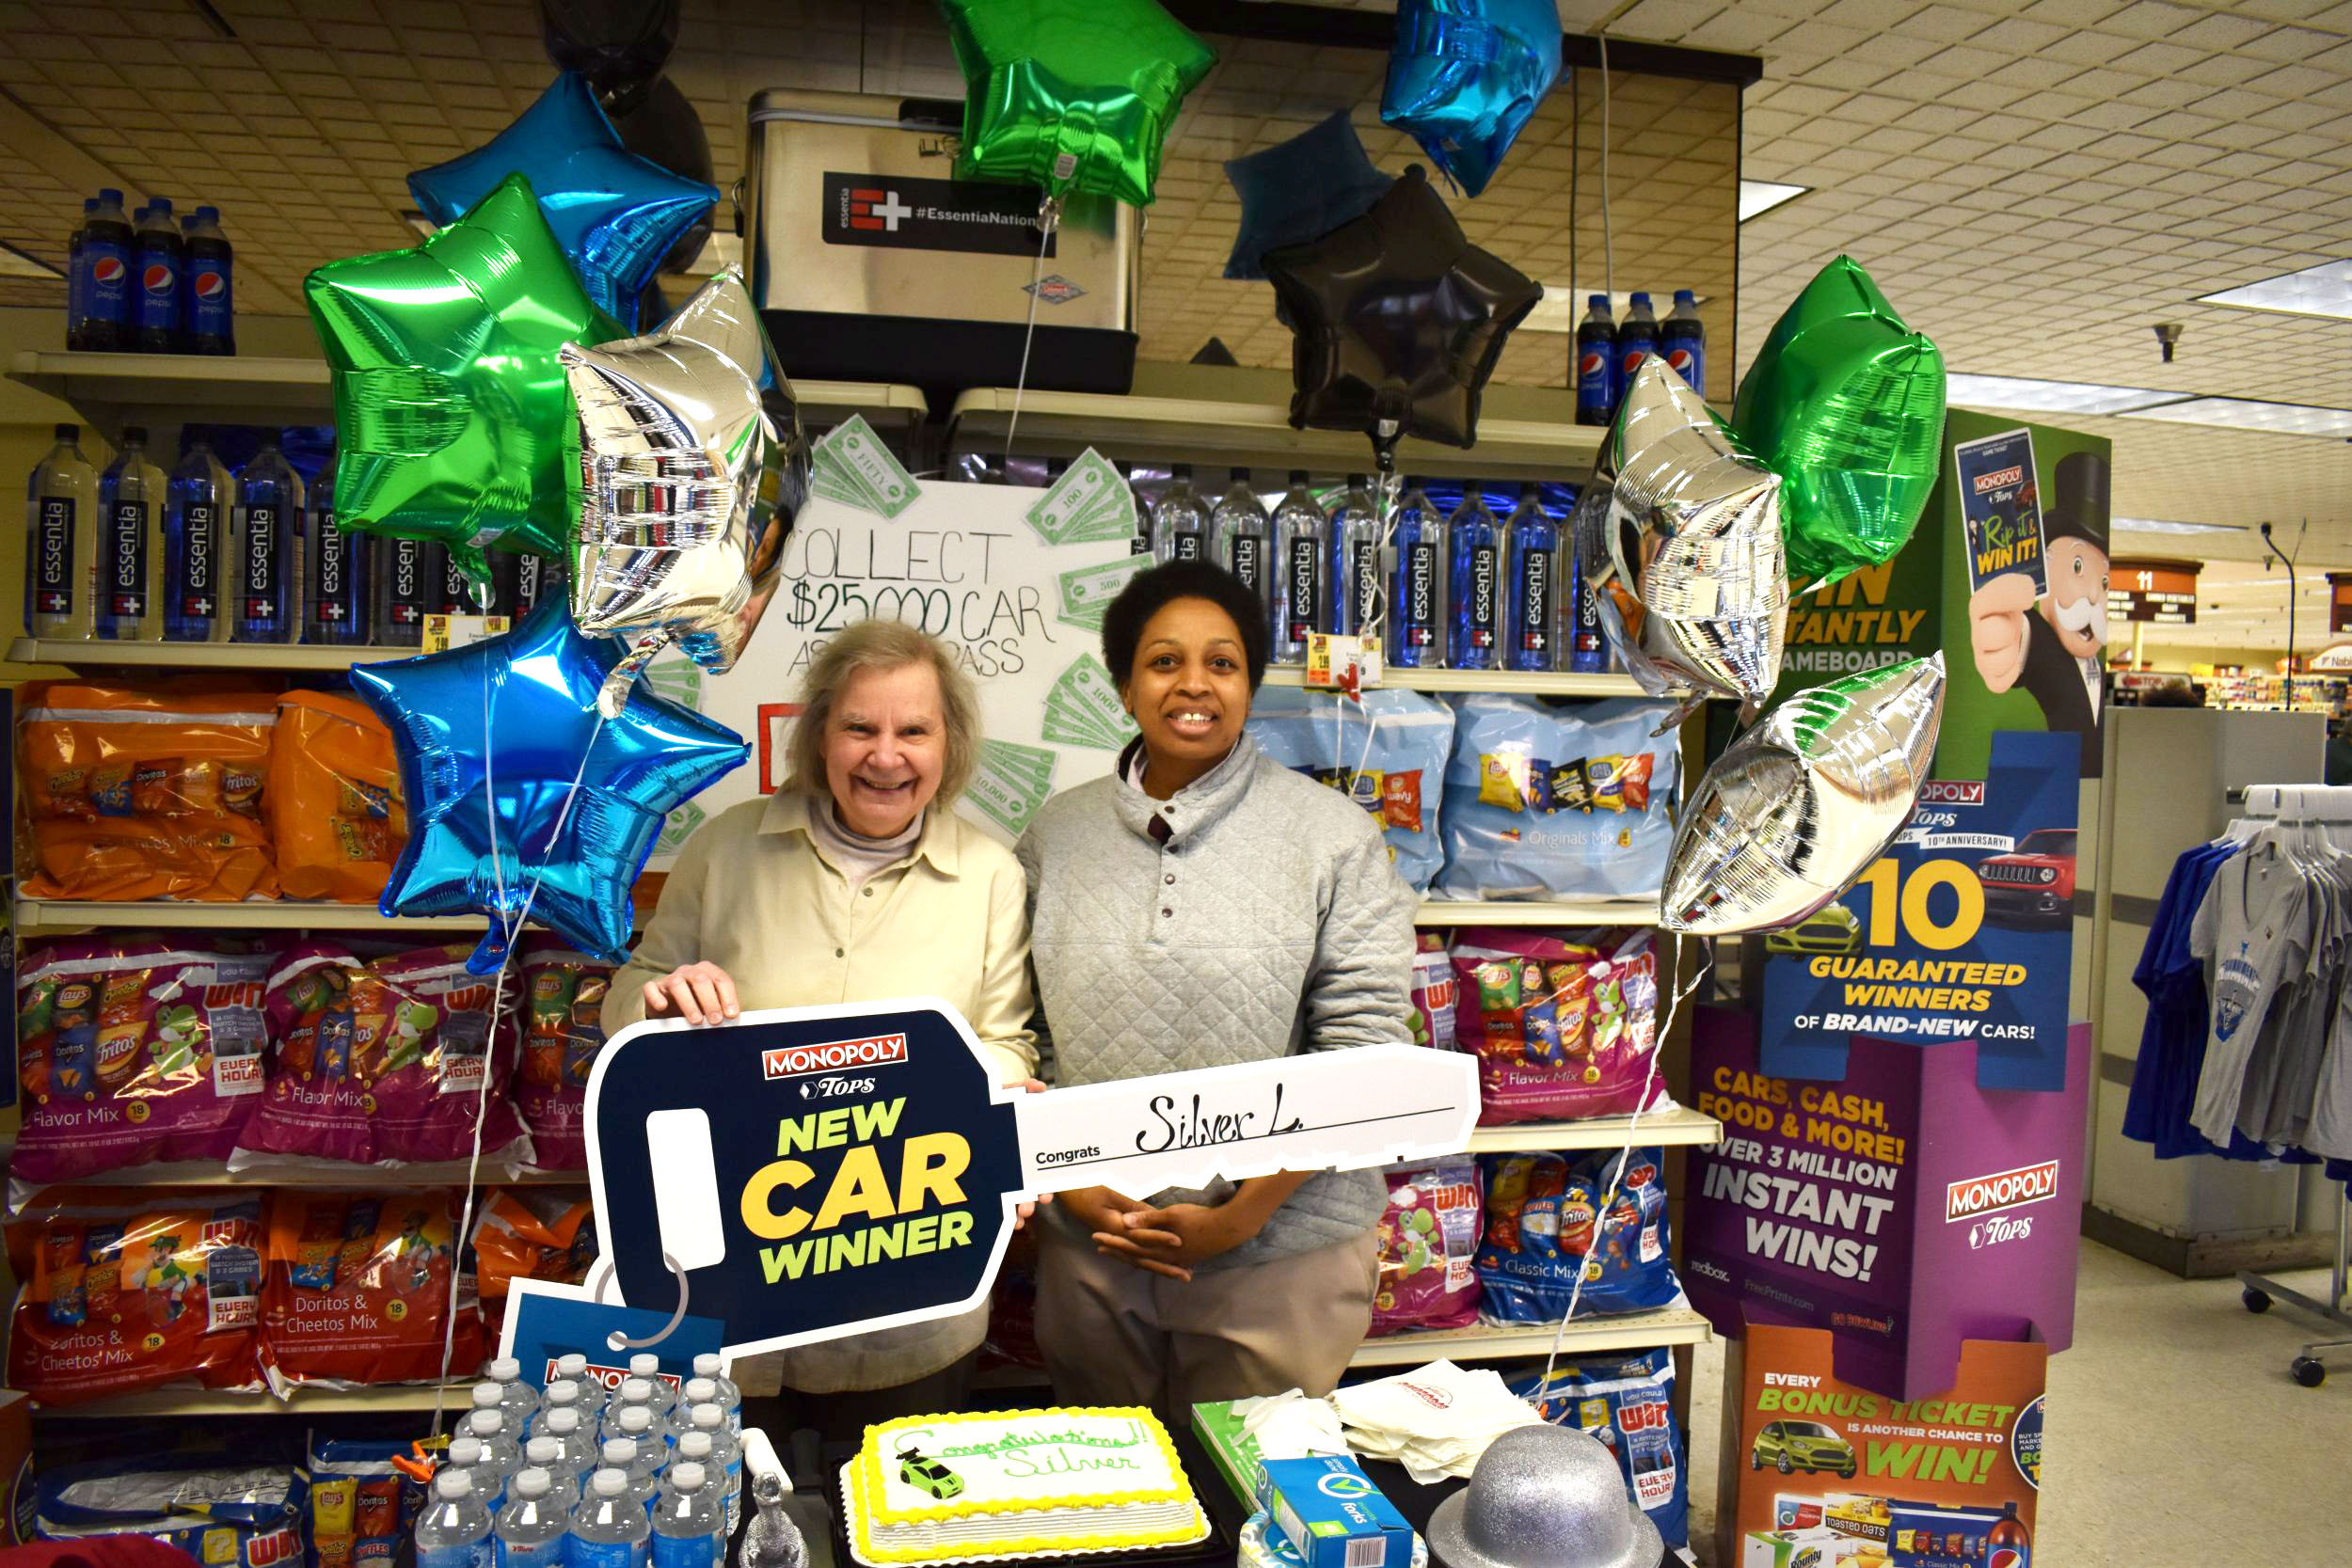 This WNY couple won a car at Tops and gave it away 3 minutes later